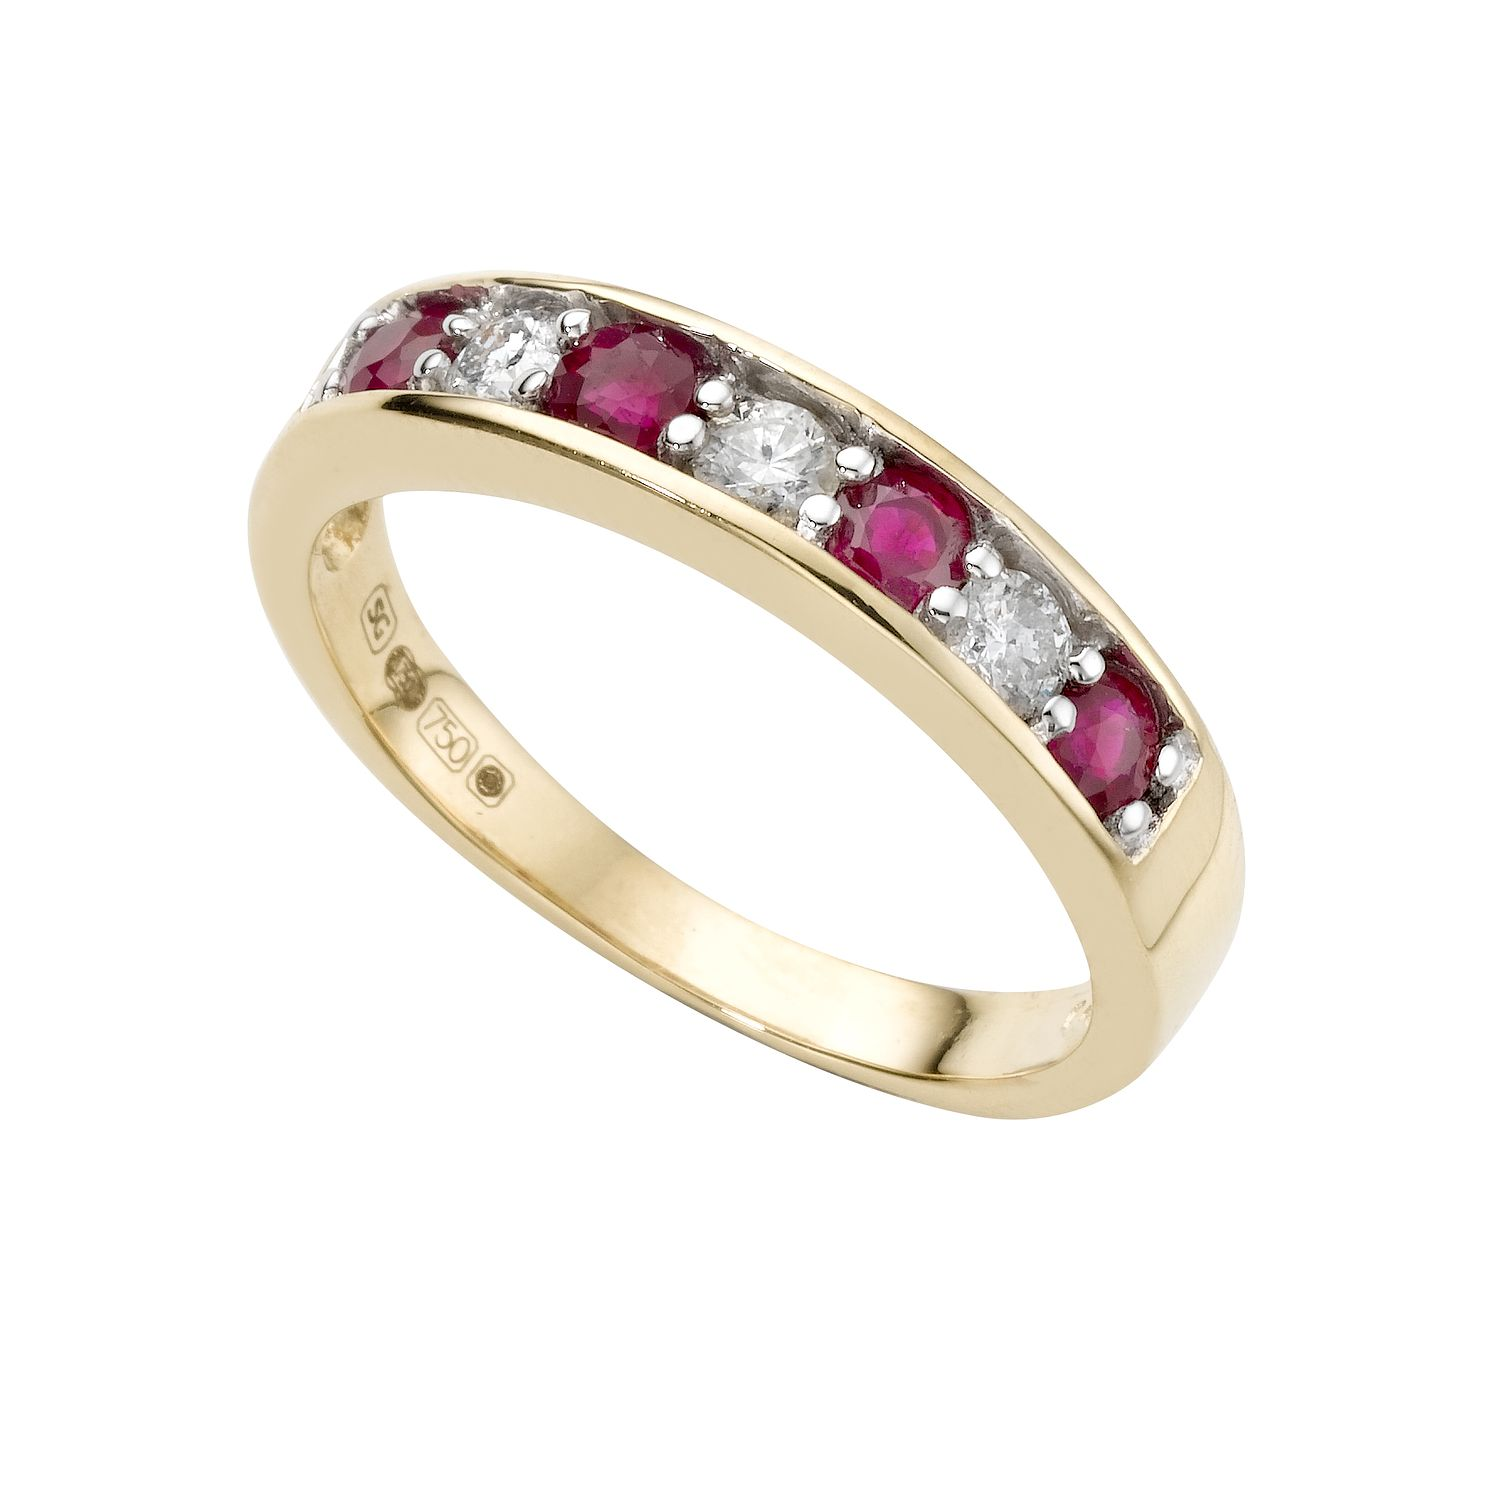 image burmese ring ruby bands anniversary engagement diamond oval with gemstone rings boutique